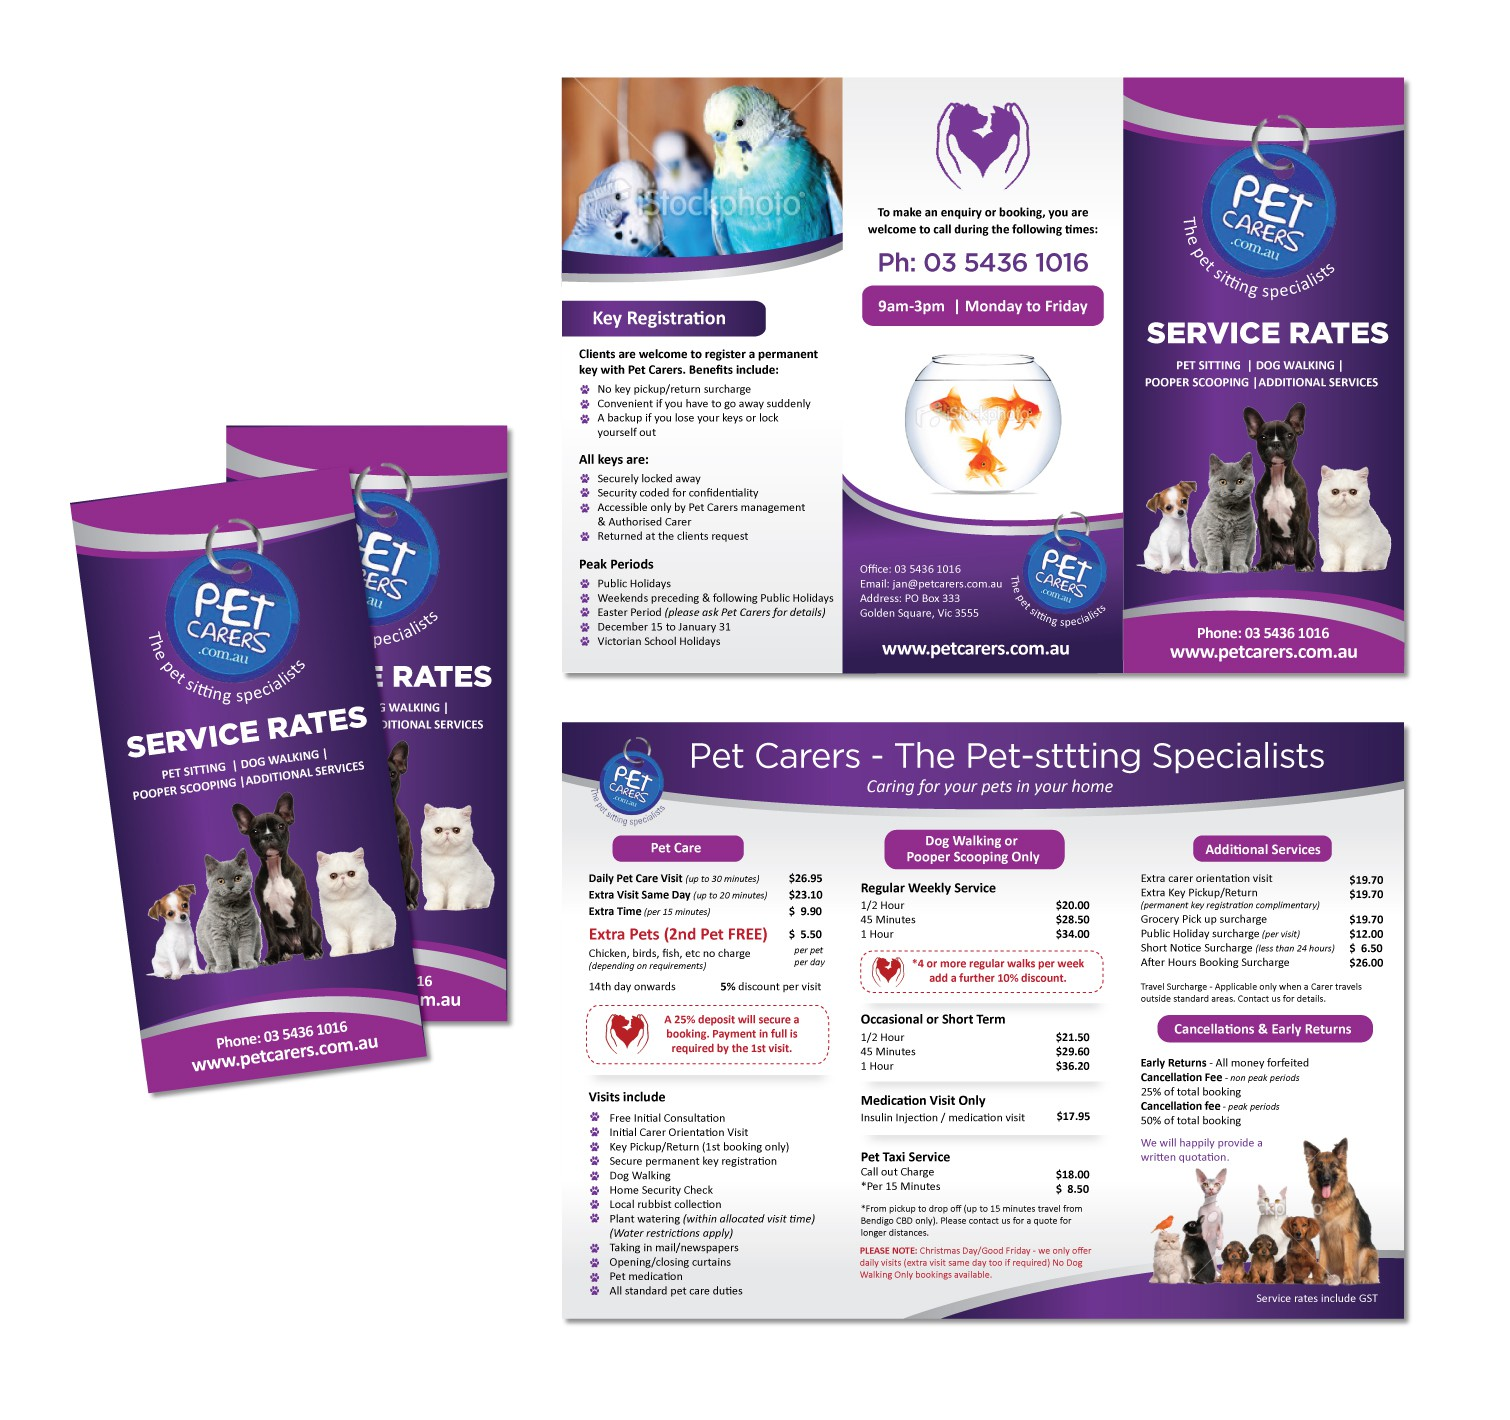 Help Petcarers-The Pet Sitting Specialists with a new stationery